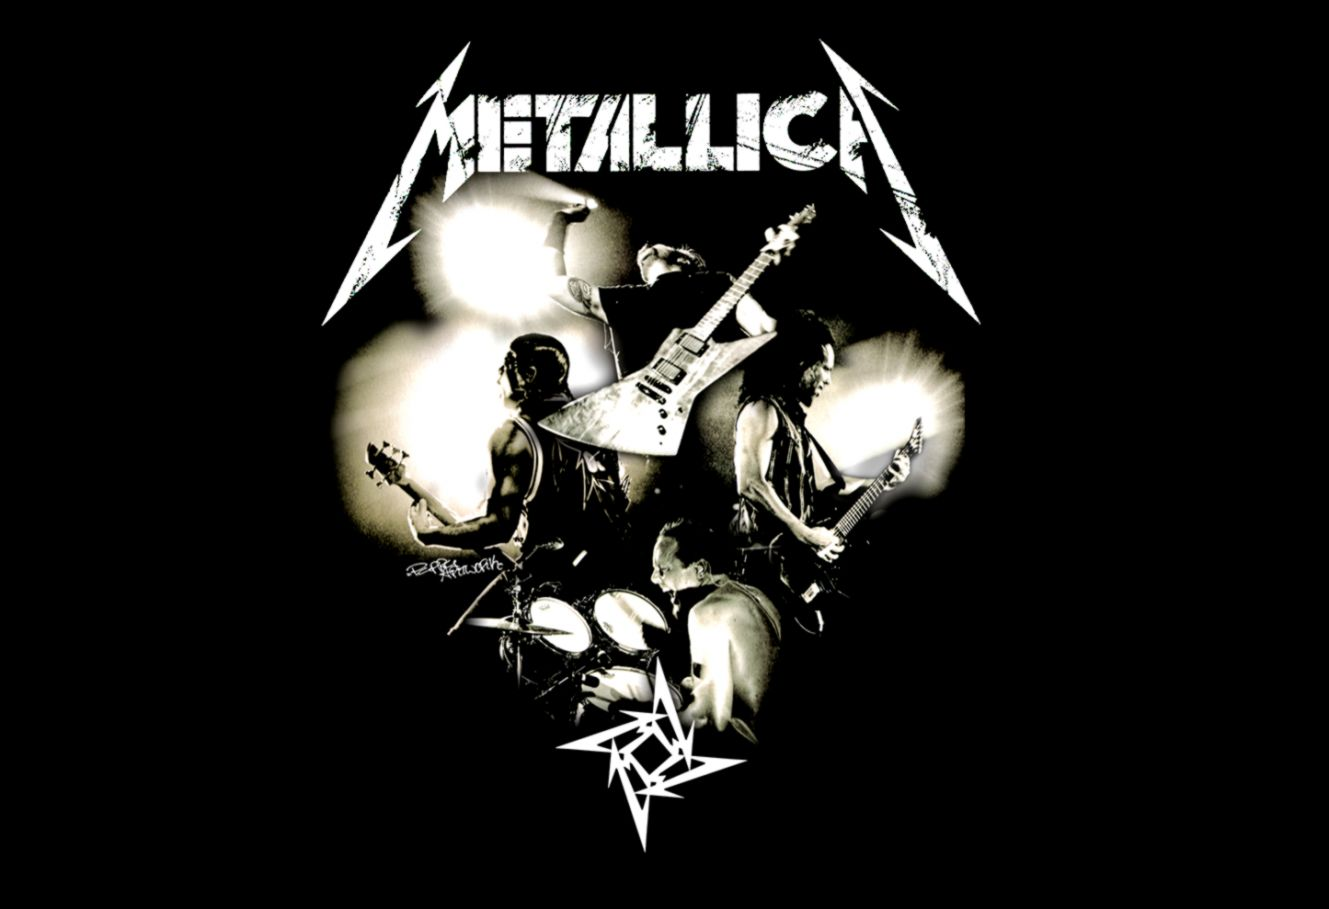 Images Collection of Metallica  nYPX84 Collection